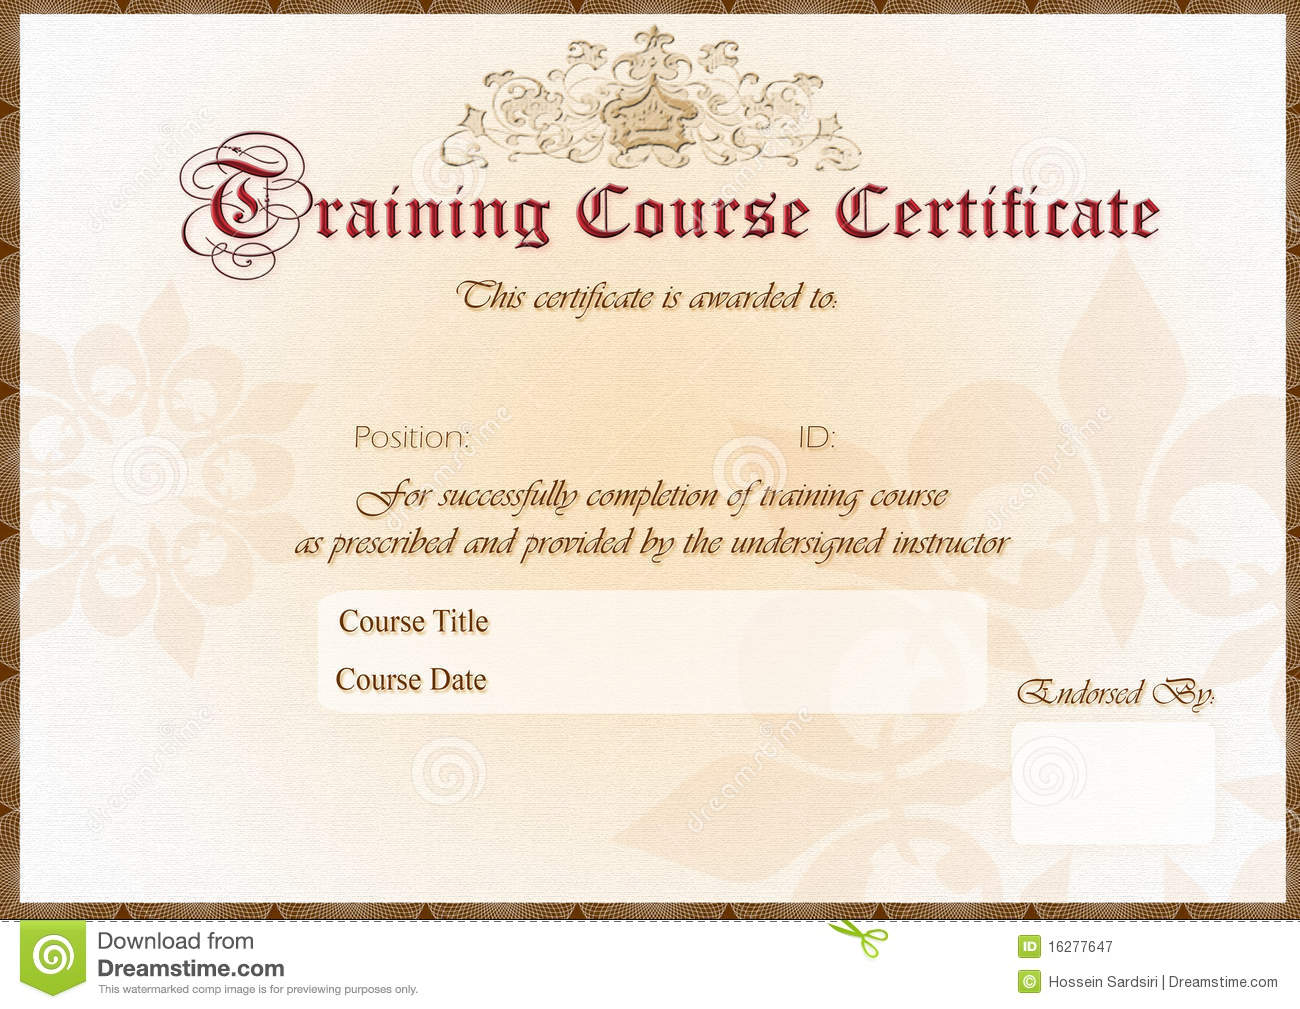 competency certificate template - training certificate royalty free stock photography